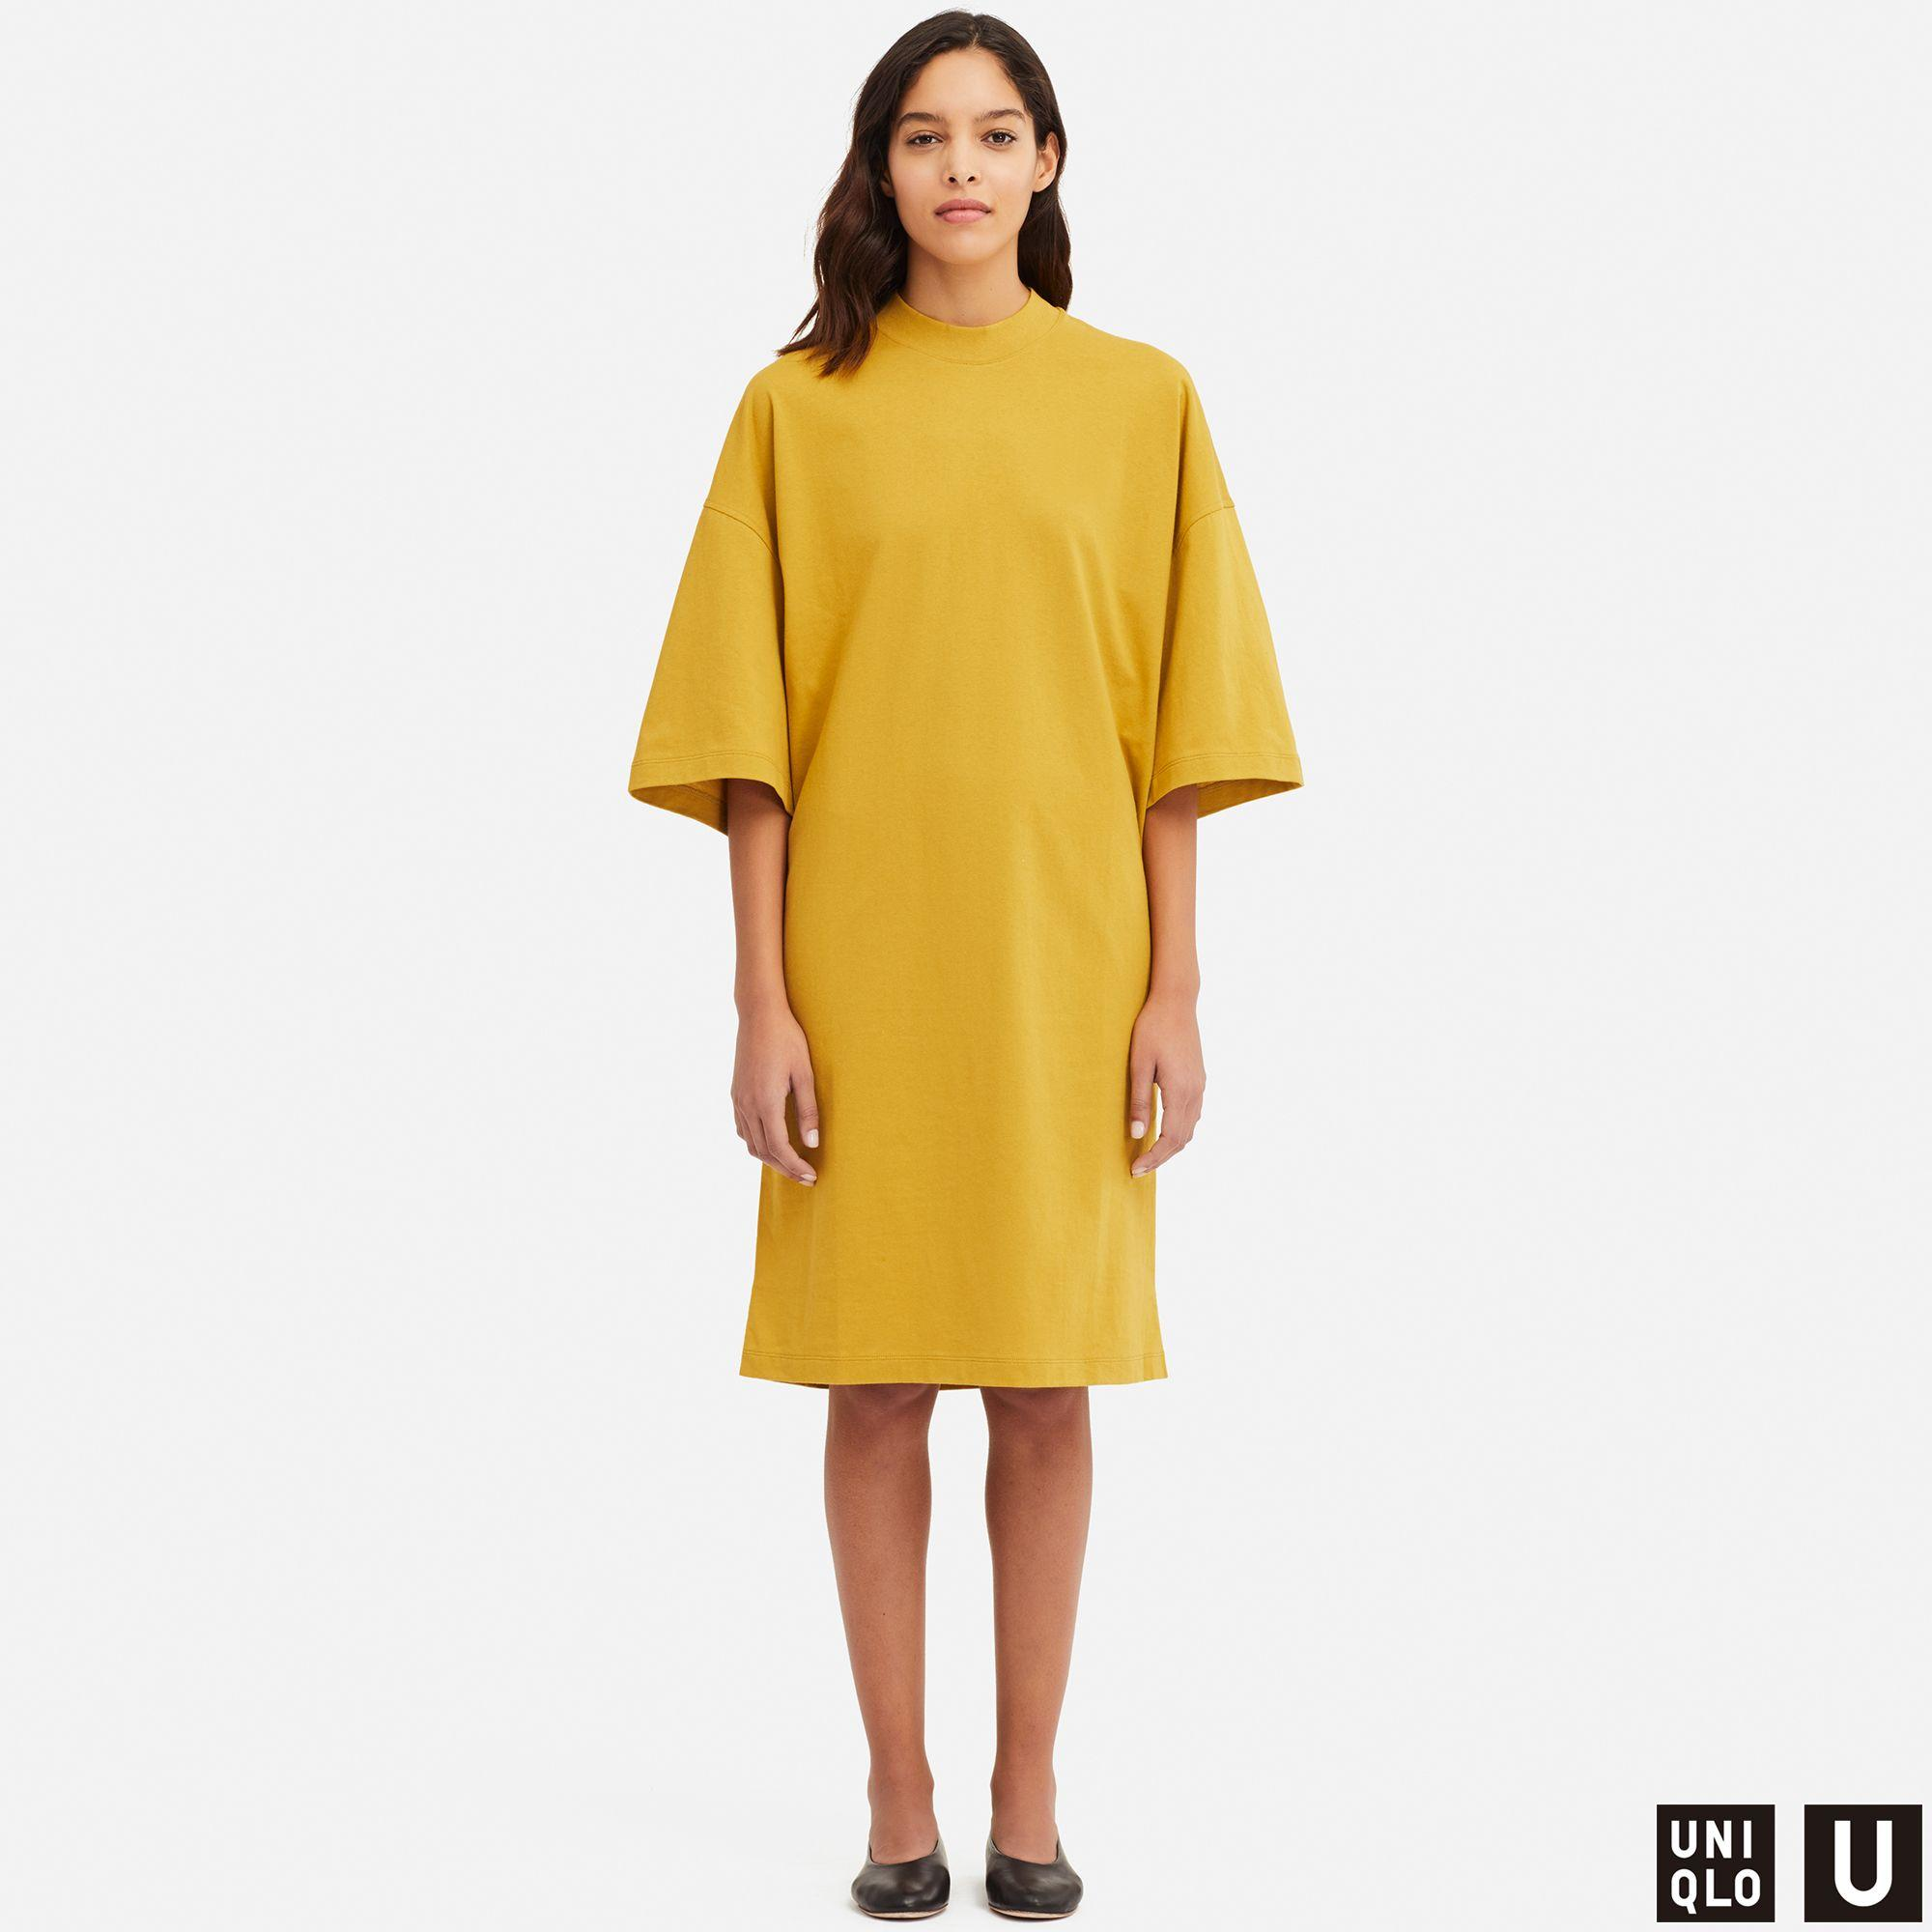 811765b92ee4a6 Uniqlo Women U Oversize Half-sleeve T-shirt Dress in Yellow - Lyst